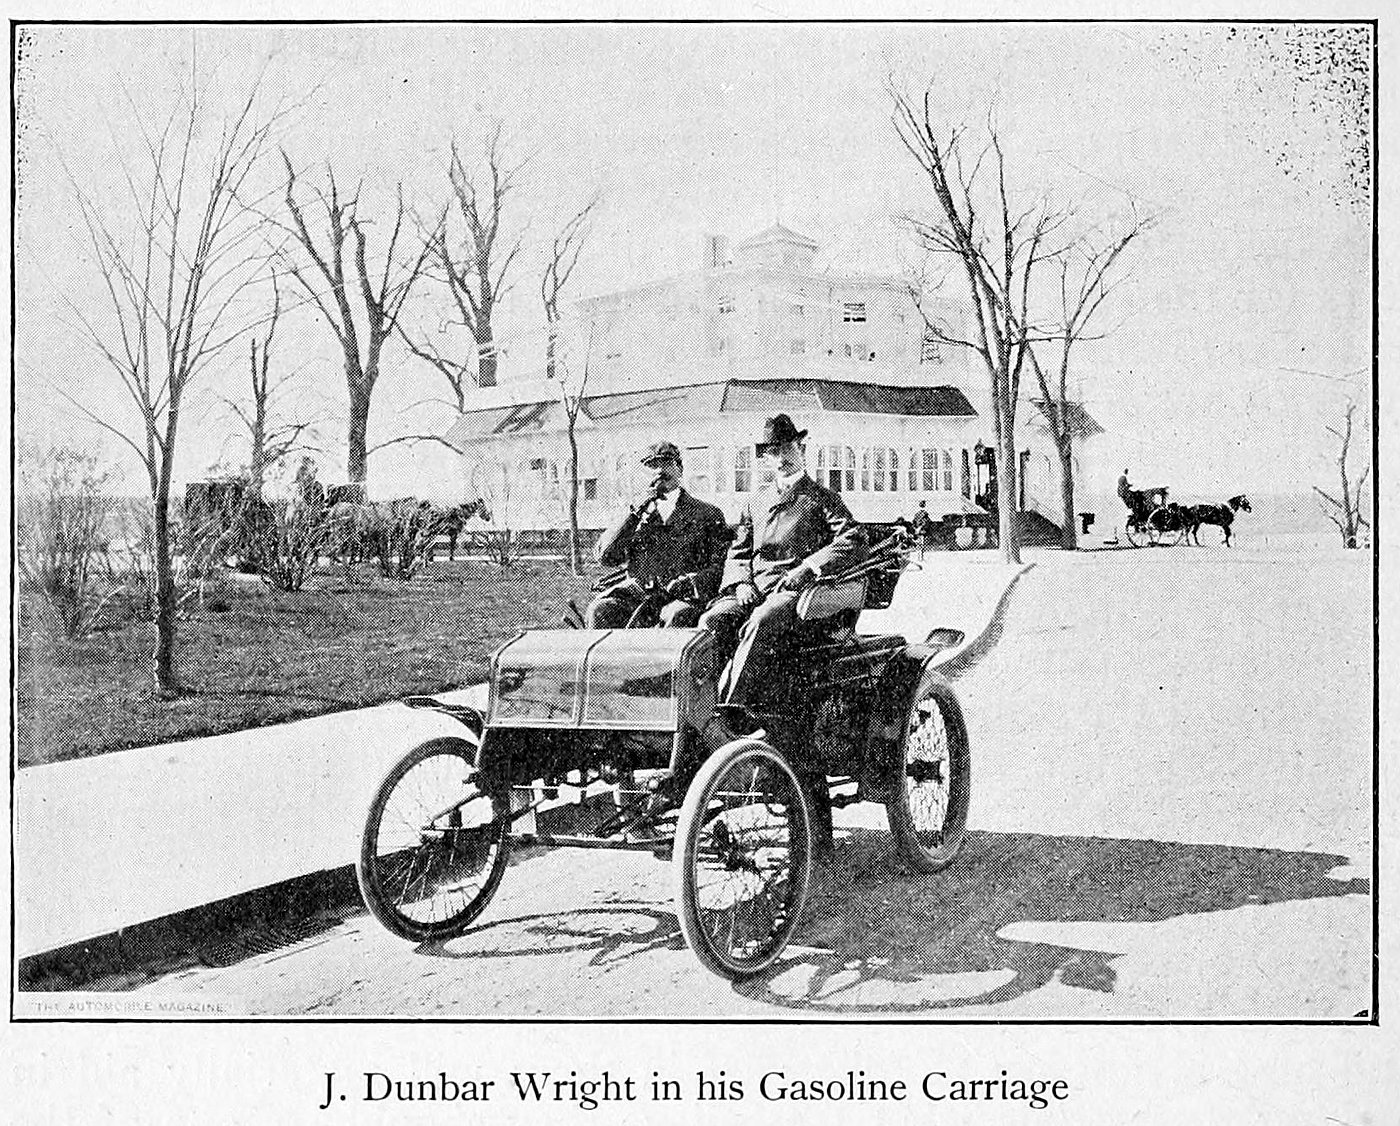 J.Dunbar Wright in his gasoline carriage (1900s)